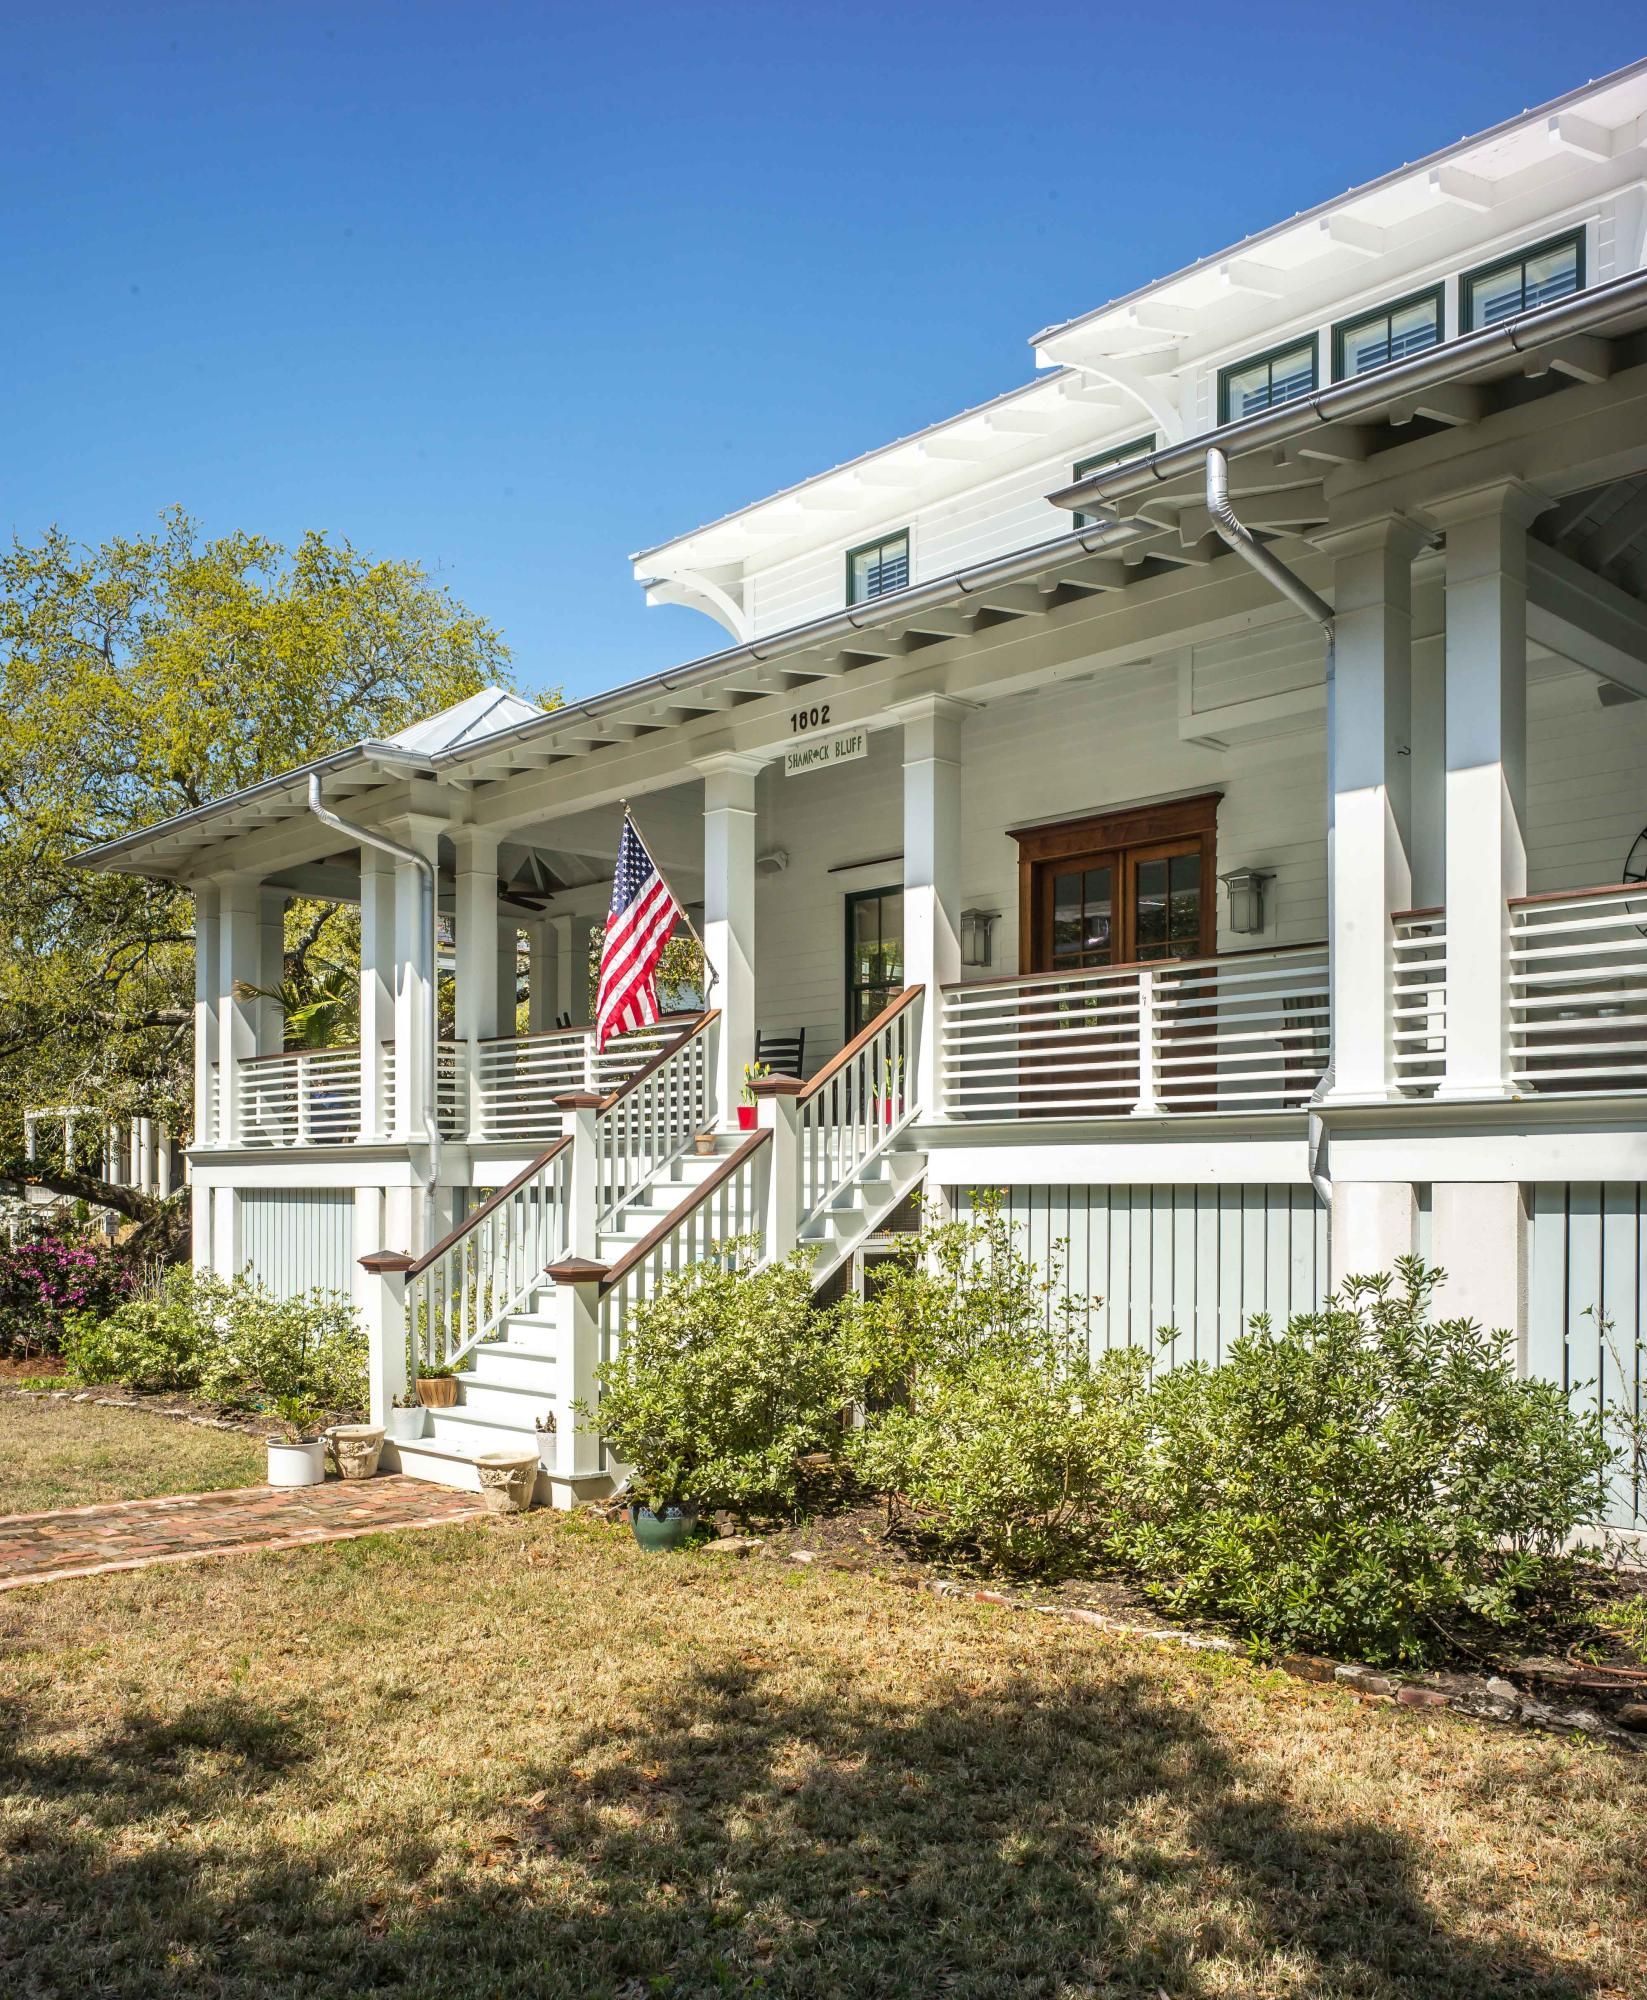 Sullivans Island Homes For Sale - 1802 Ion, Sullivans Island, SC - 41